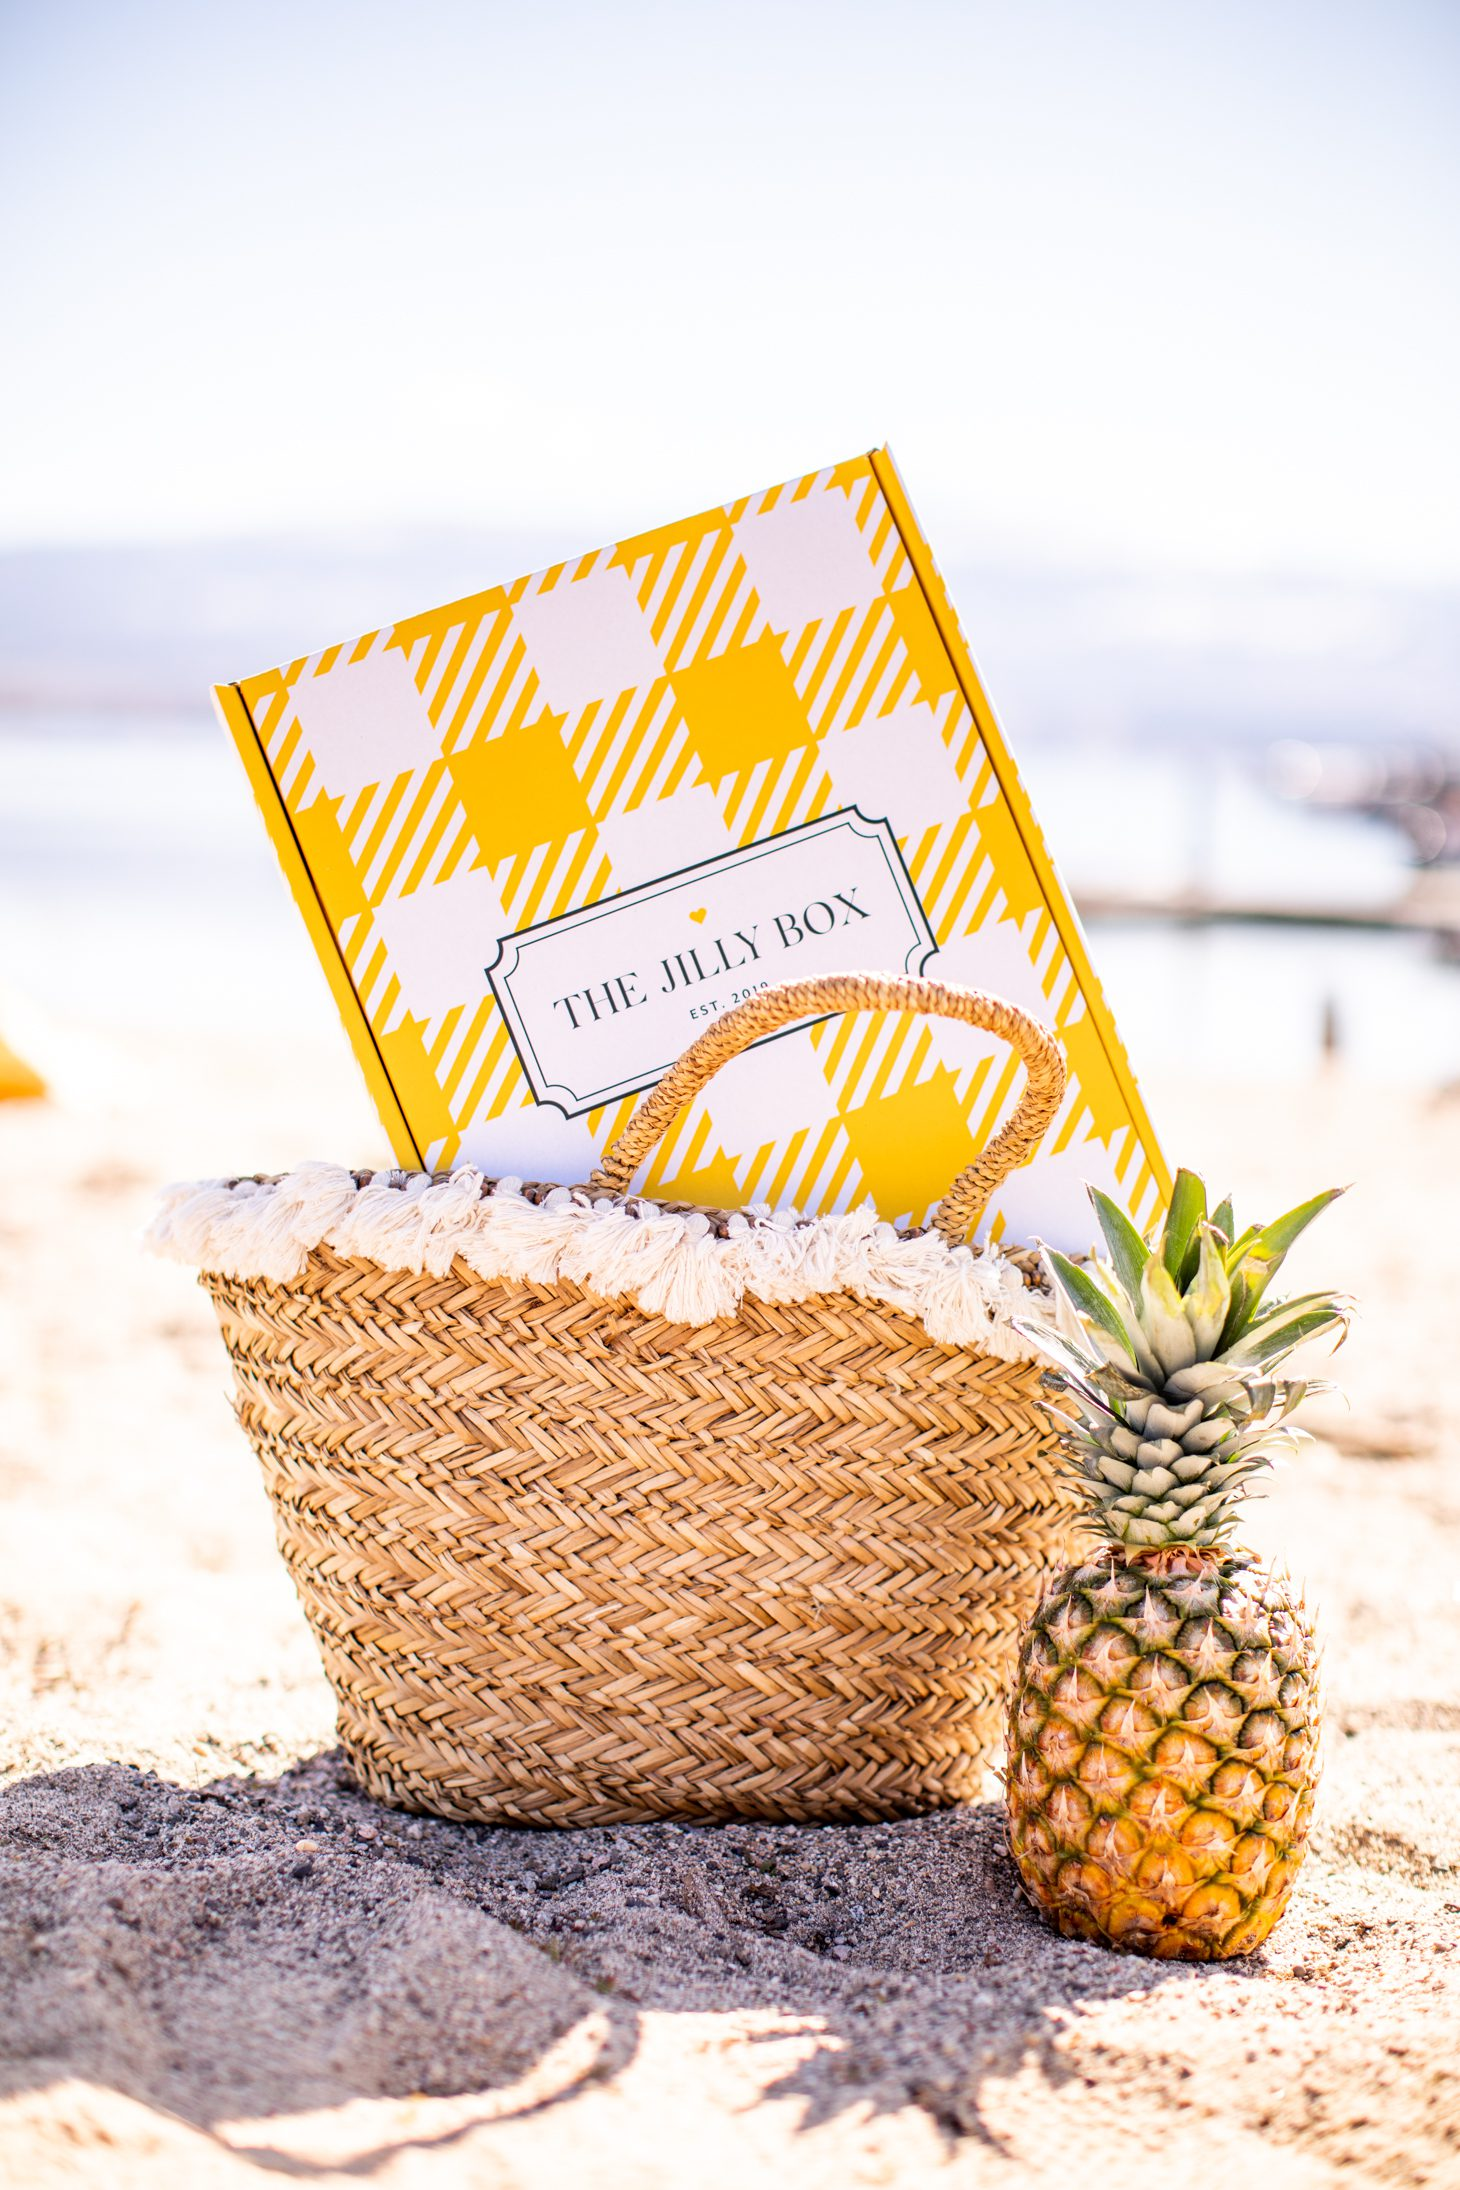 The Summer 2020 Jilly Box on the beach in a bag beside pineapple